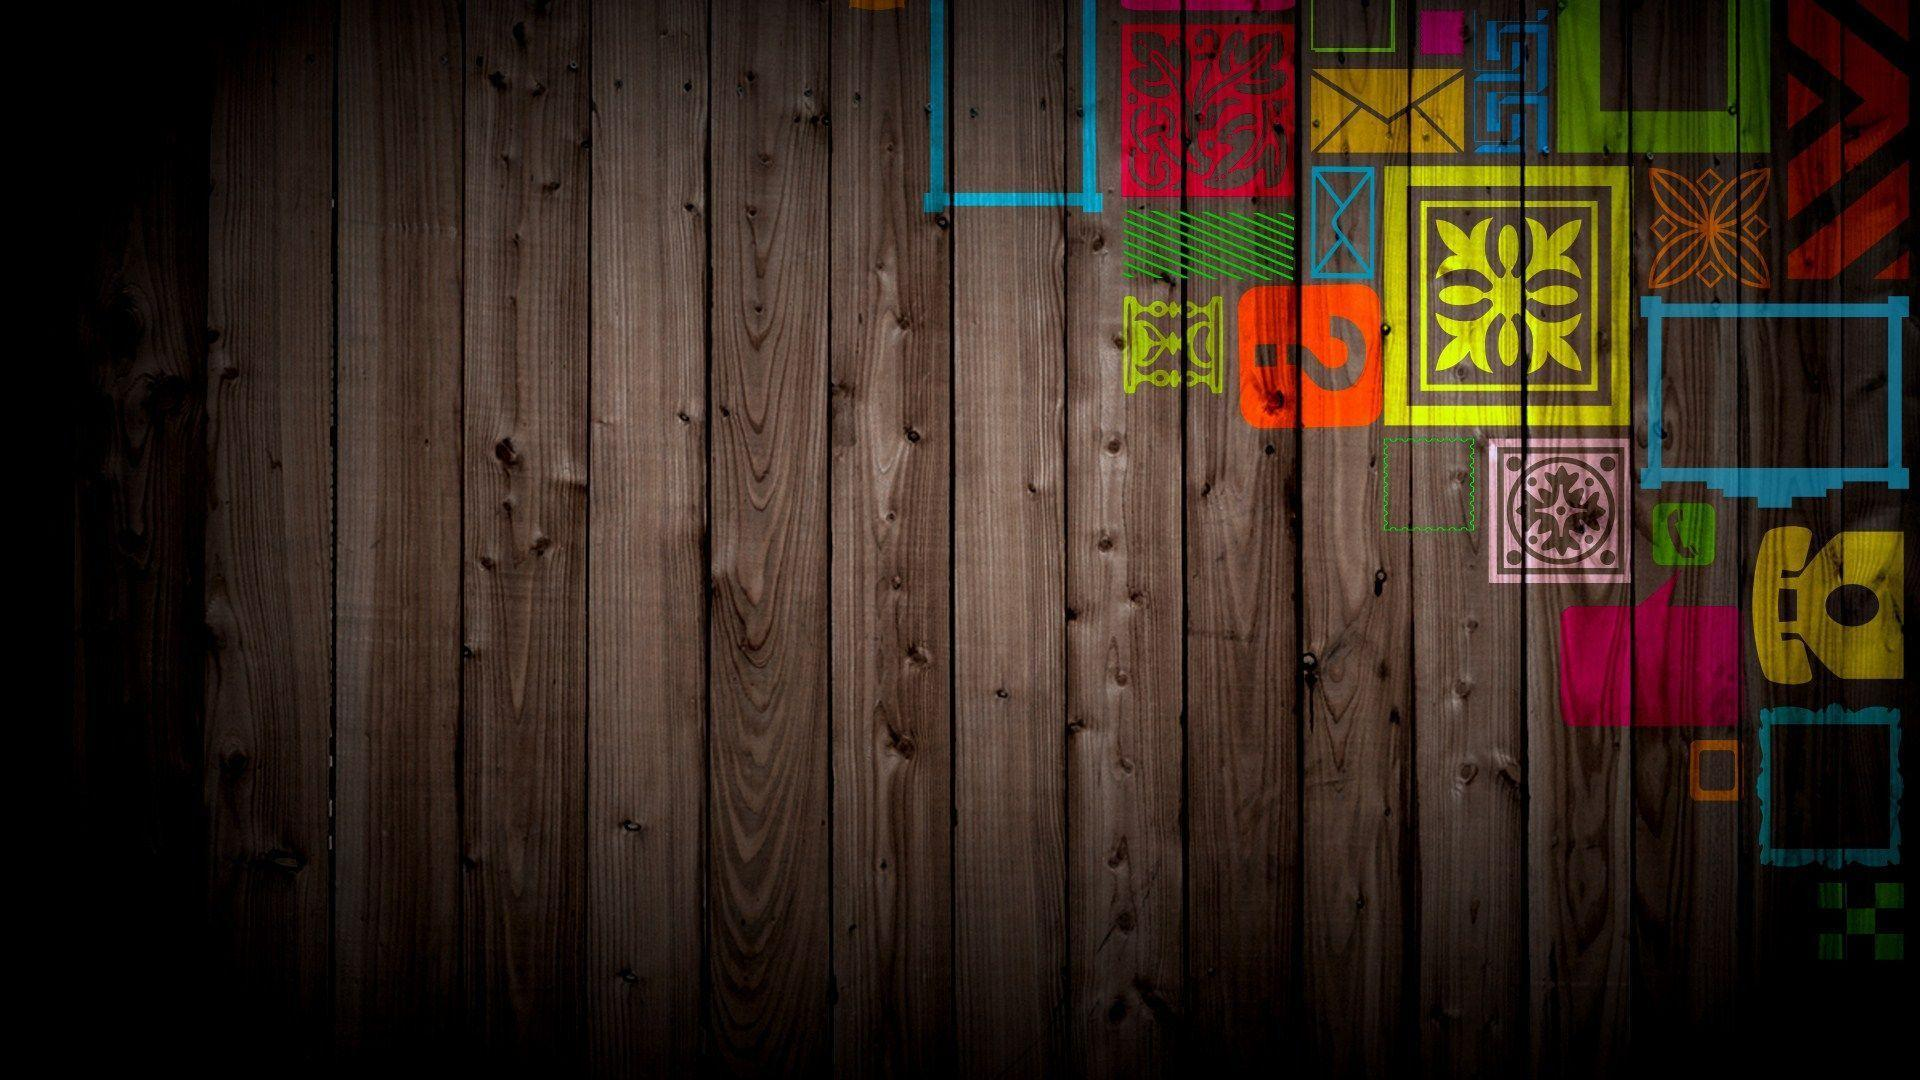 Download Cool Wooden Wall Cool Twitter Backgrounds Wallpapers